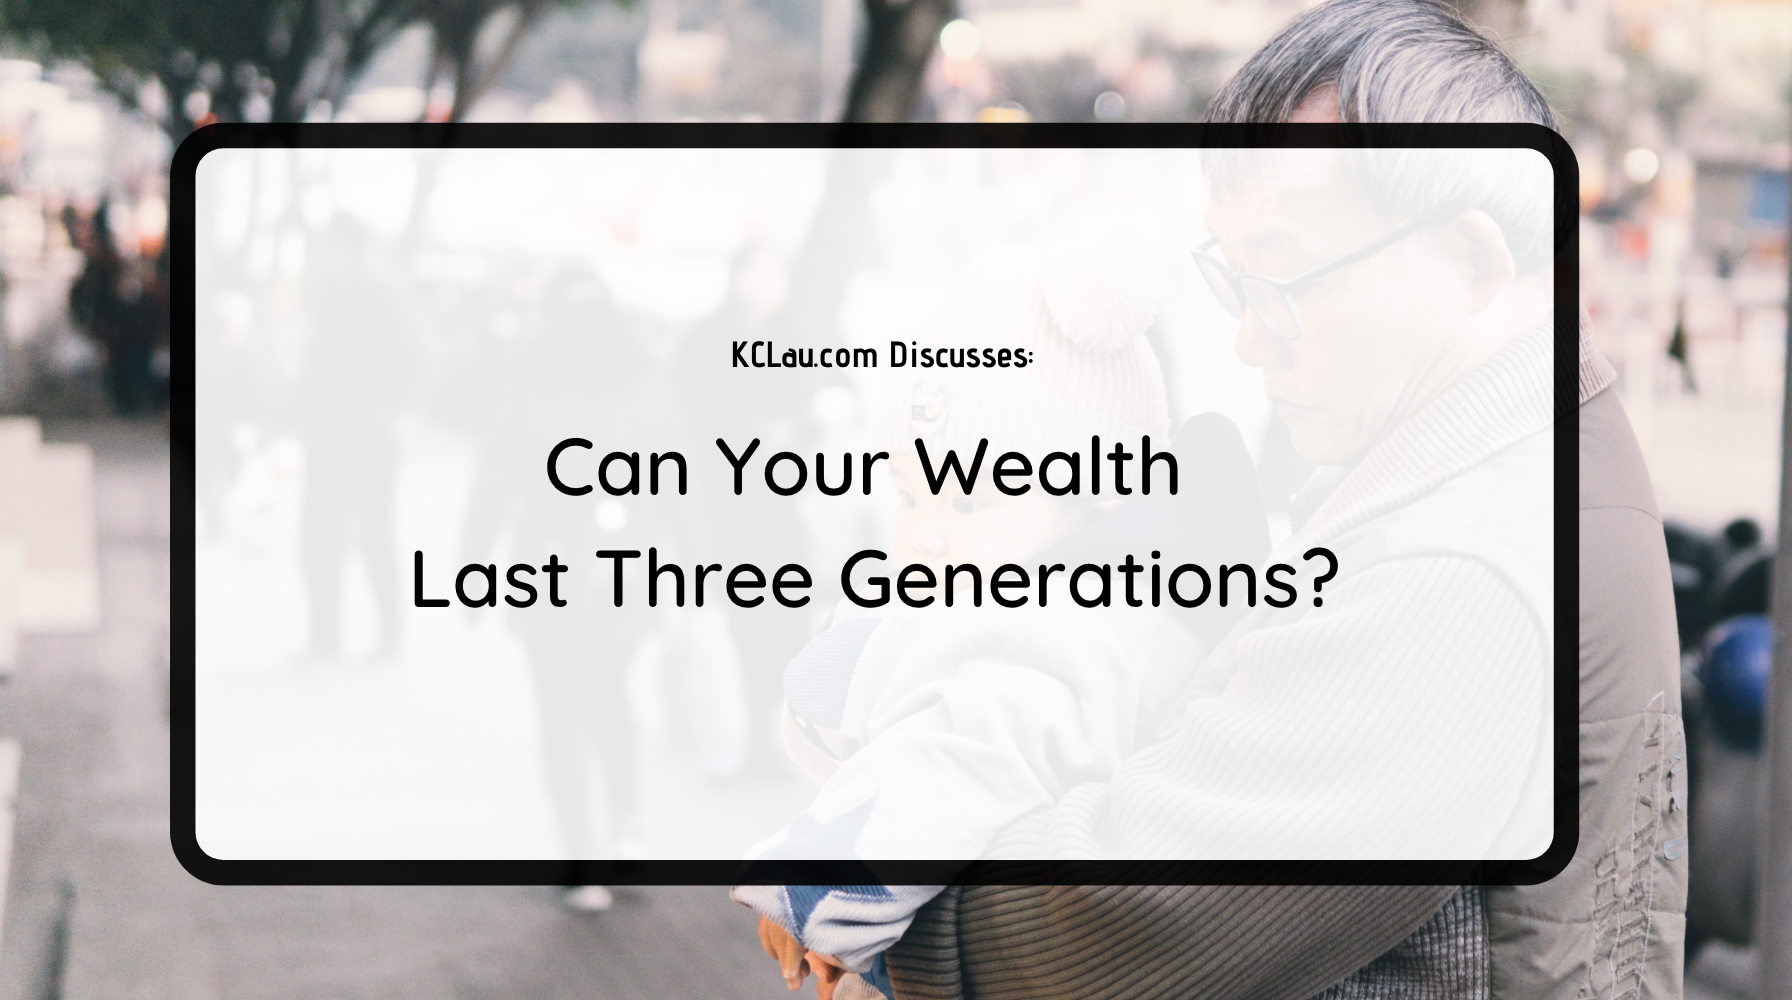 Can Your Wealth Last Three Generations?